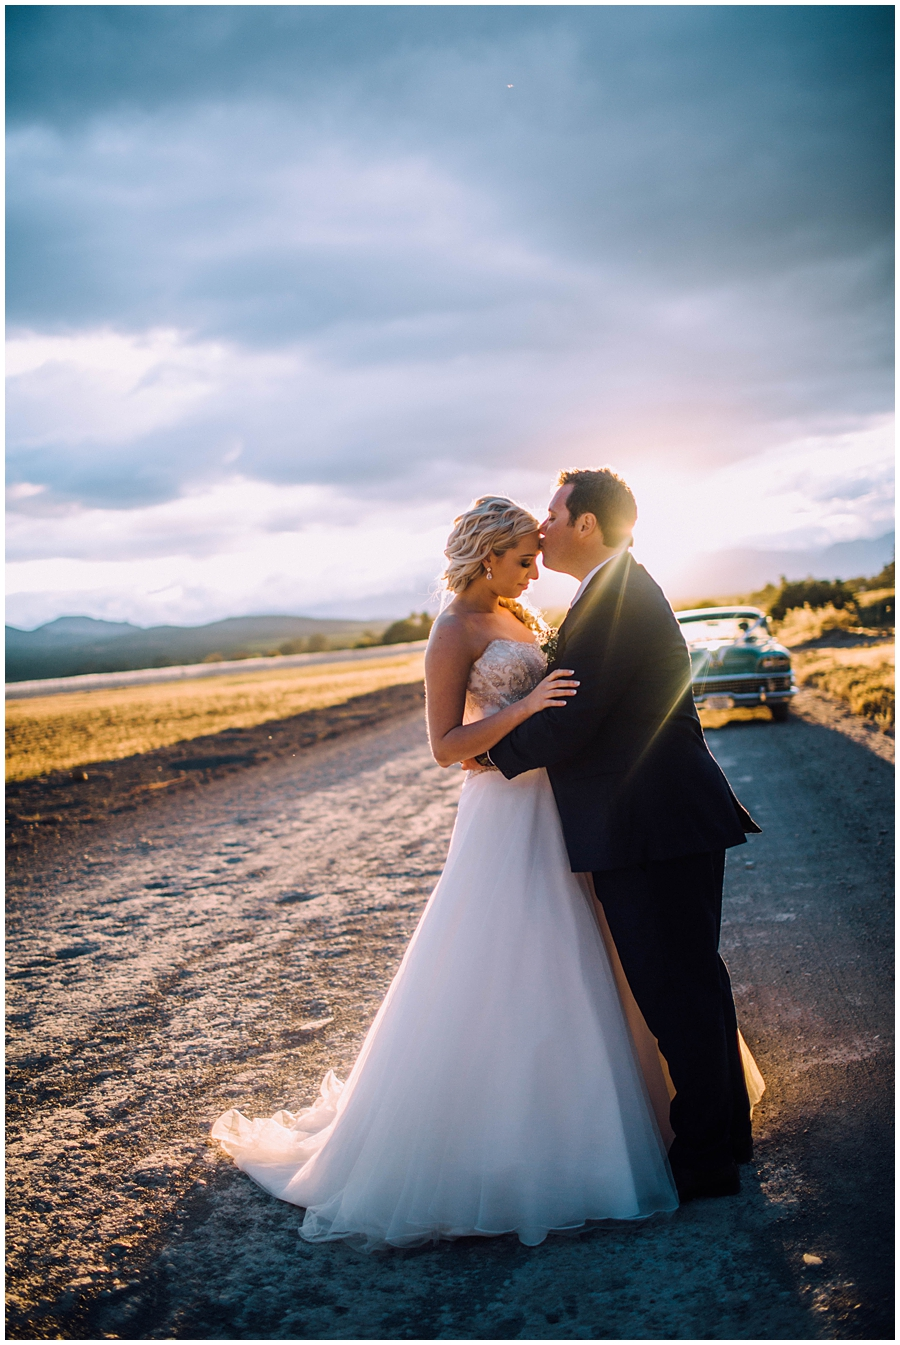 Ronel Kruger Cape Town Wedding and Lifestyle Photographer_4929.jpg